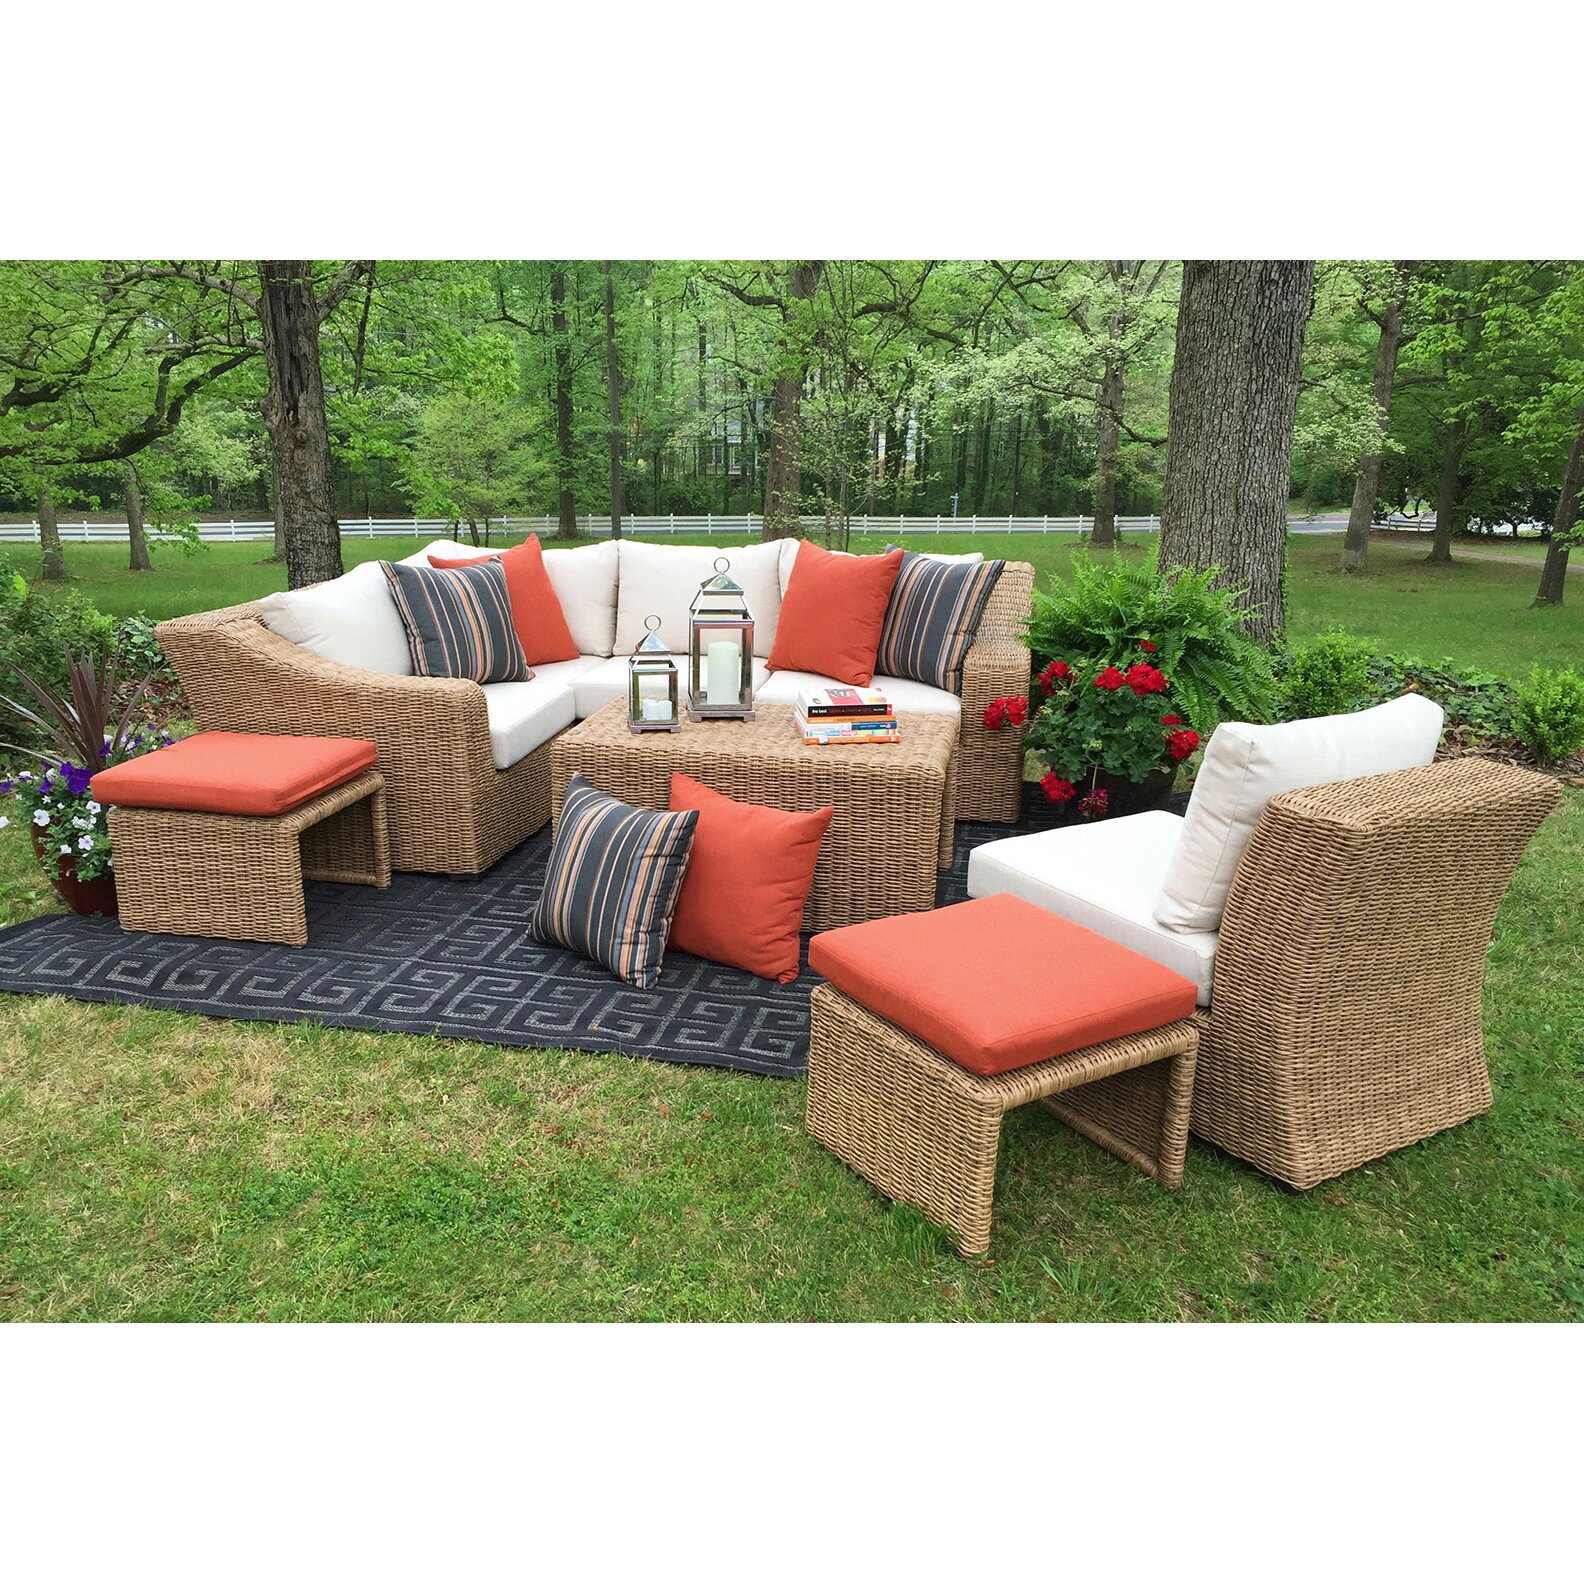 Ae Outdoor Arizona 4 Piece Seating Group With Cushions Reviews Wayfair